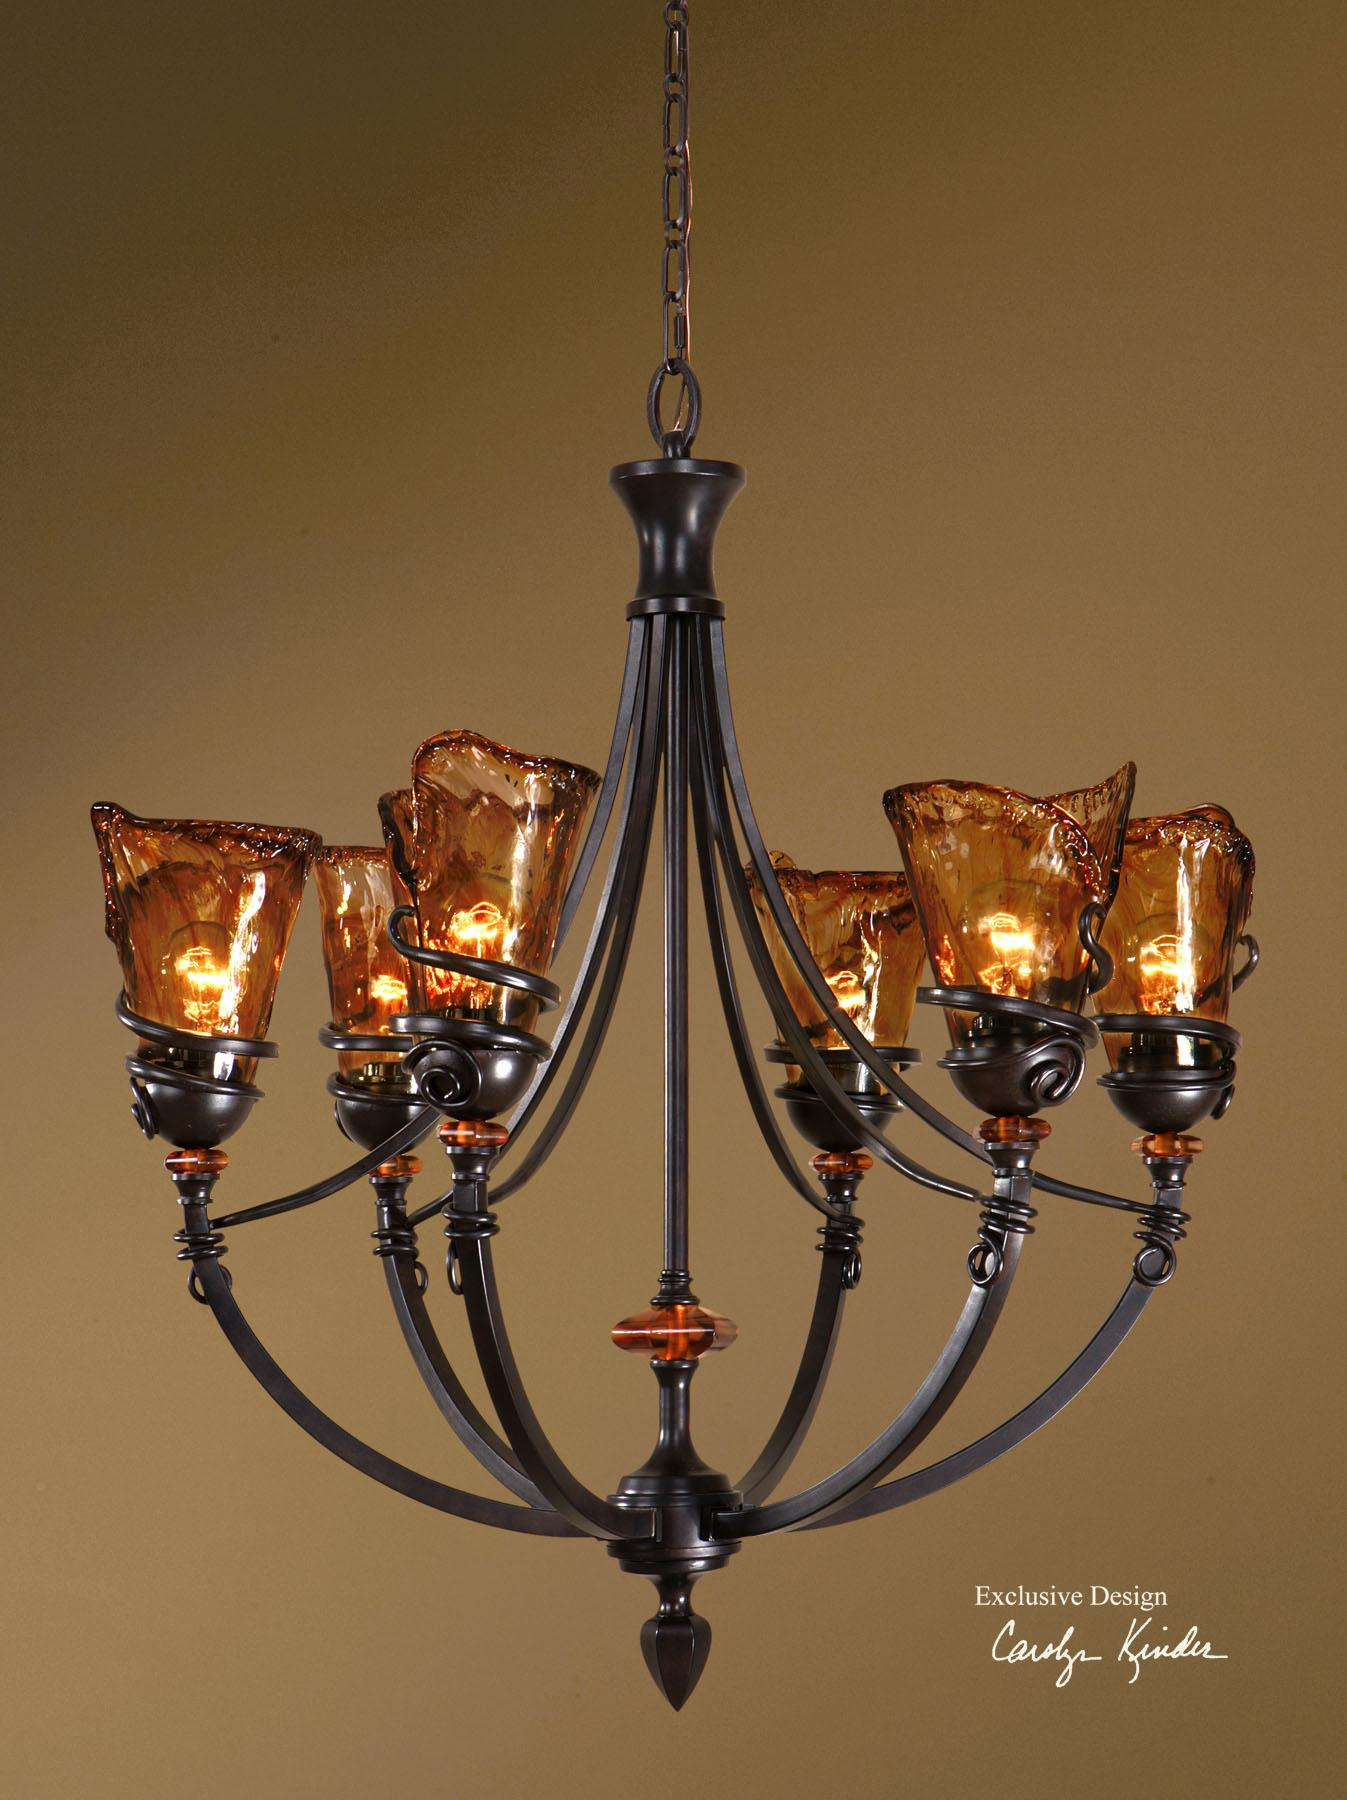 Uttermost Lighting Fixtures Vitalia 6 Light Chandelier - Item Number: 21227